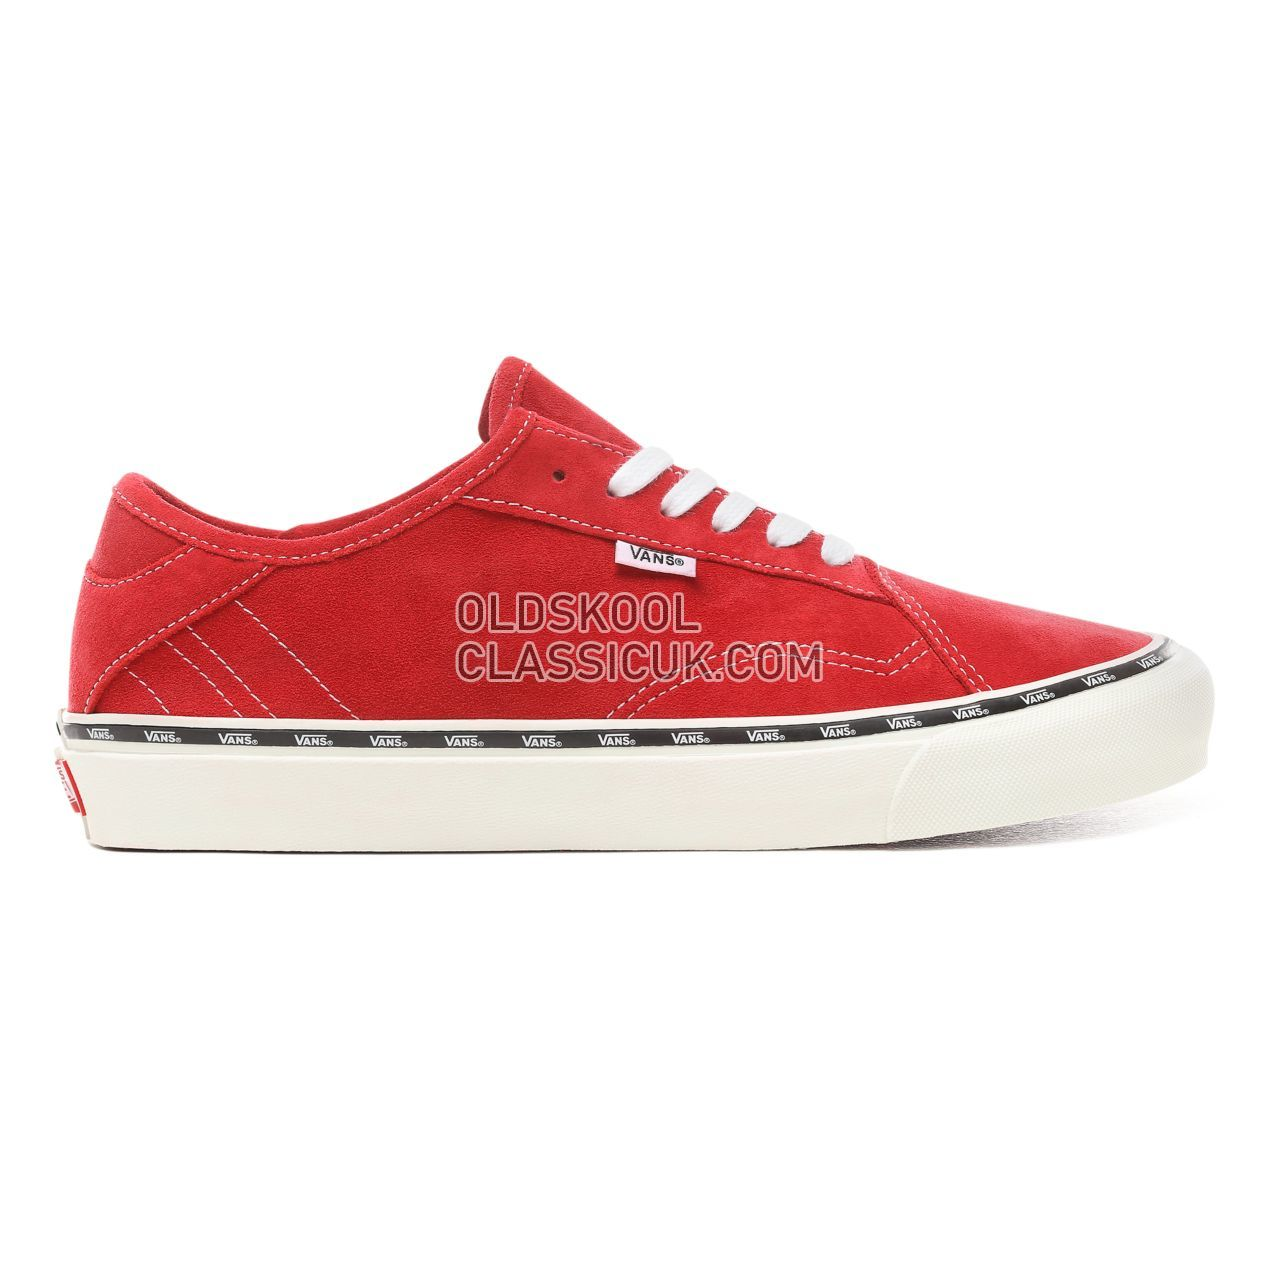 Vans New Issue Diamo Ni Sneakers Mens (New Issue) Tango Red/True White VN0A3TKDVOG Shoes